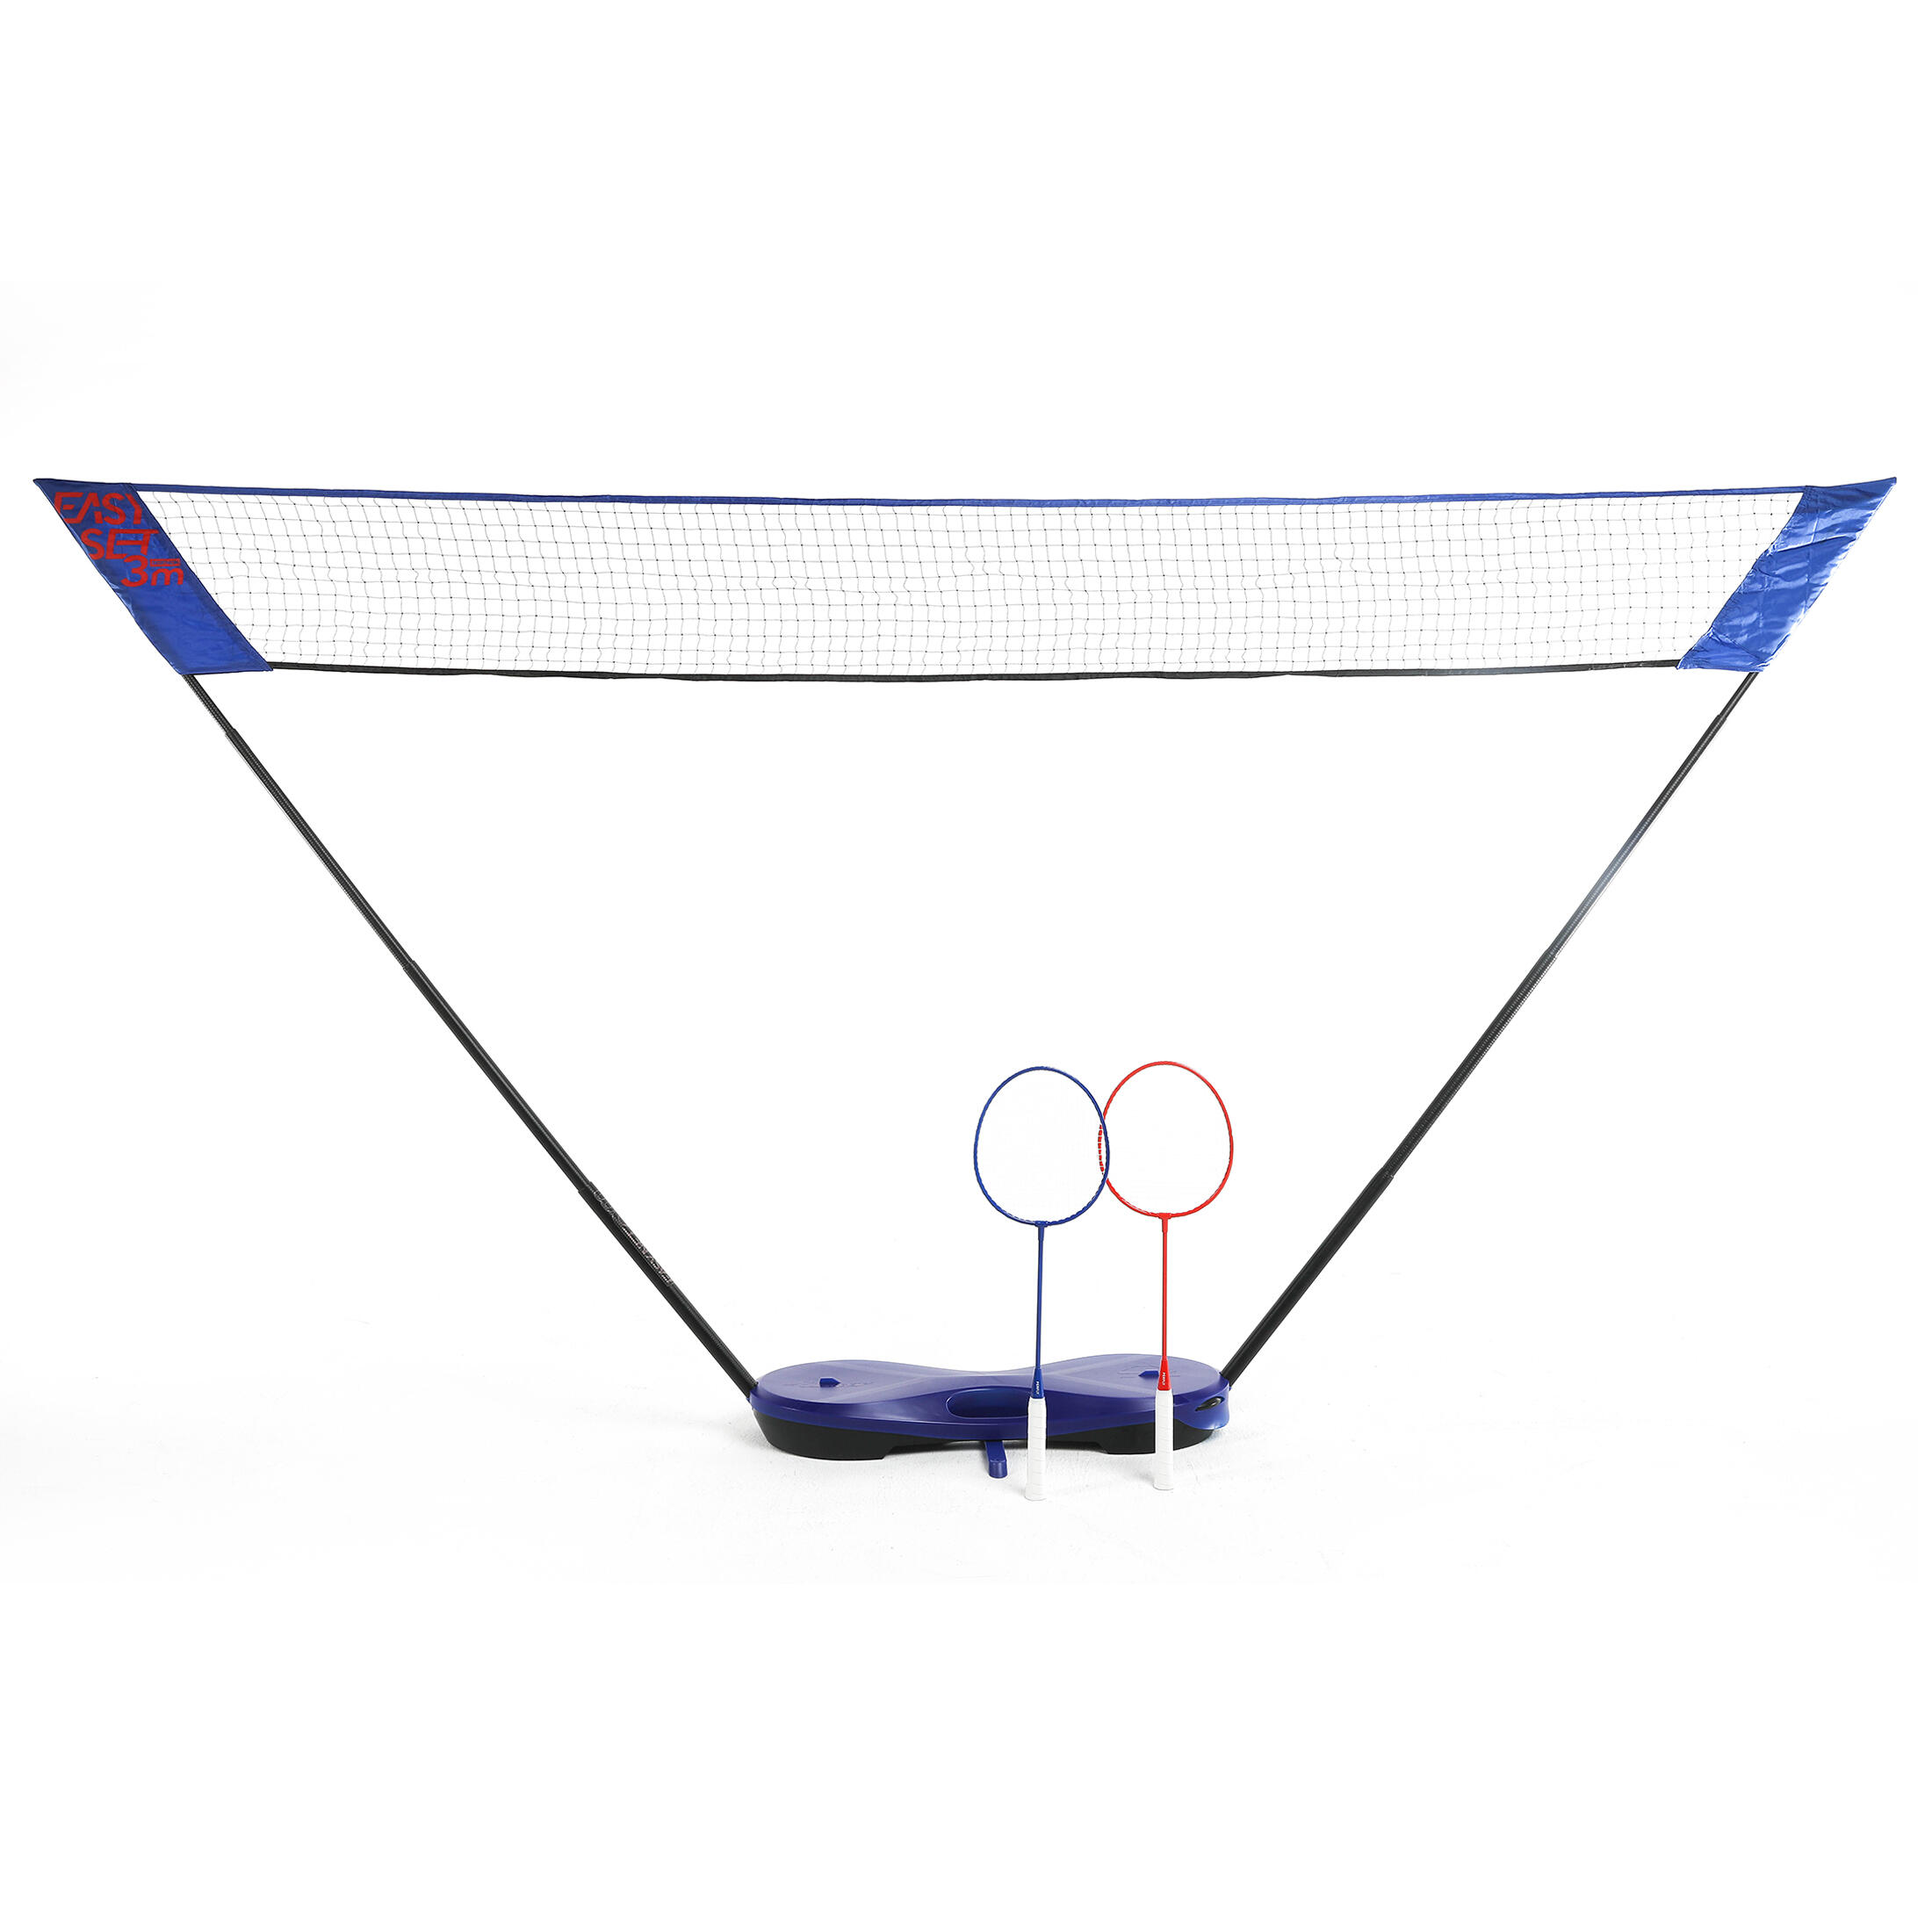 Set Badminton Filet Badminton Decathlon